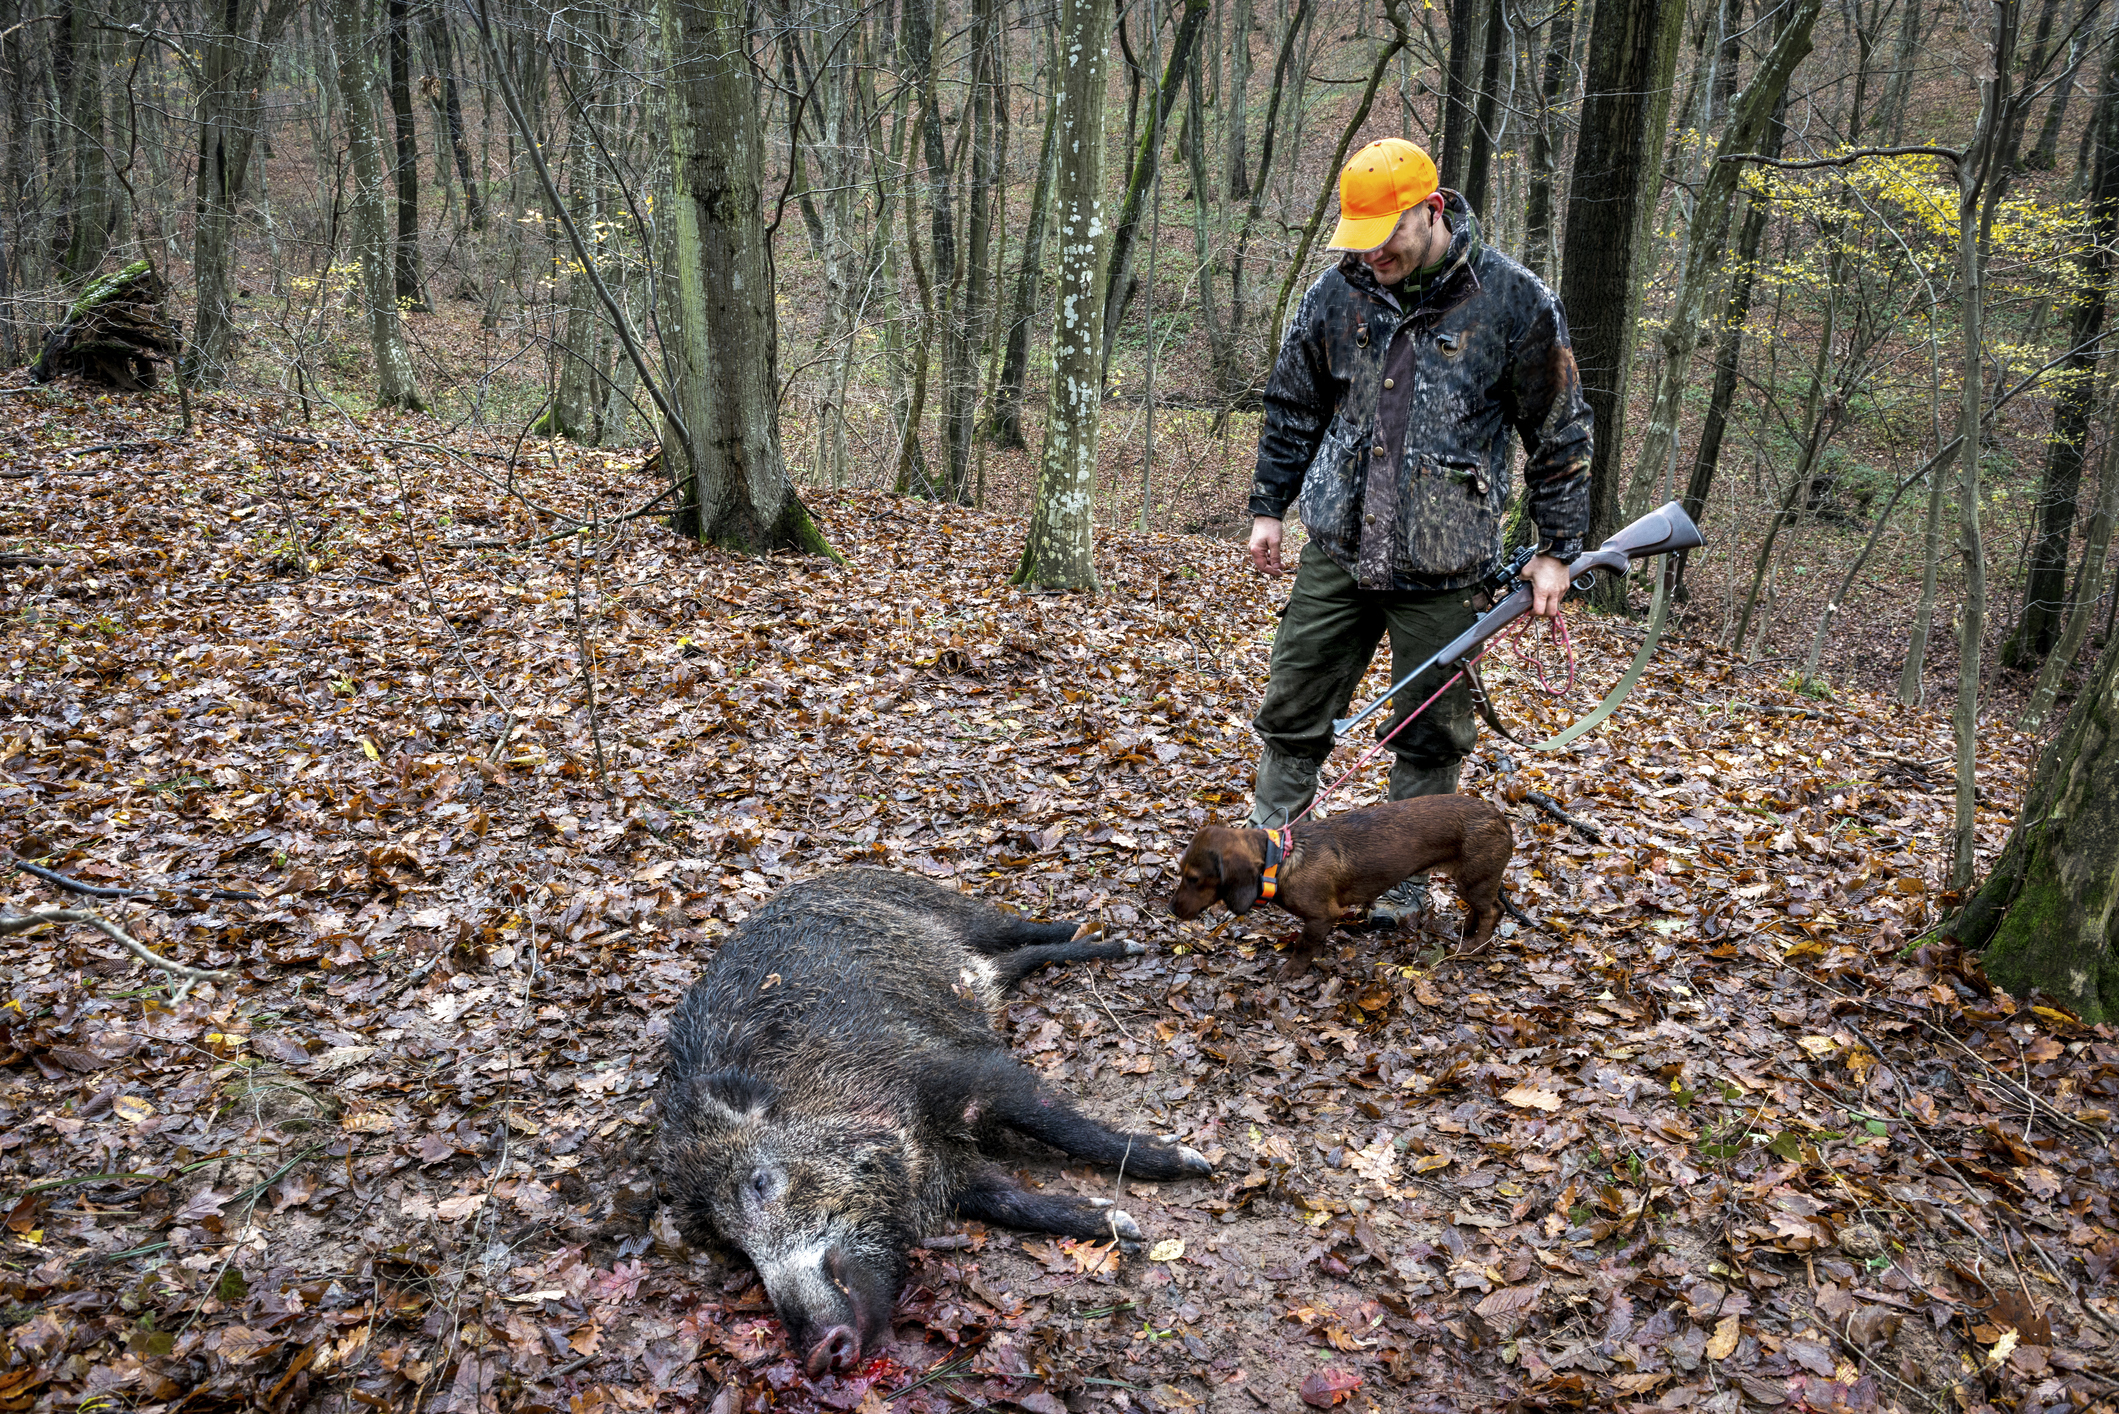 Online Dating: Why Do Men Post Photos With Dead Animals?